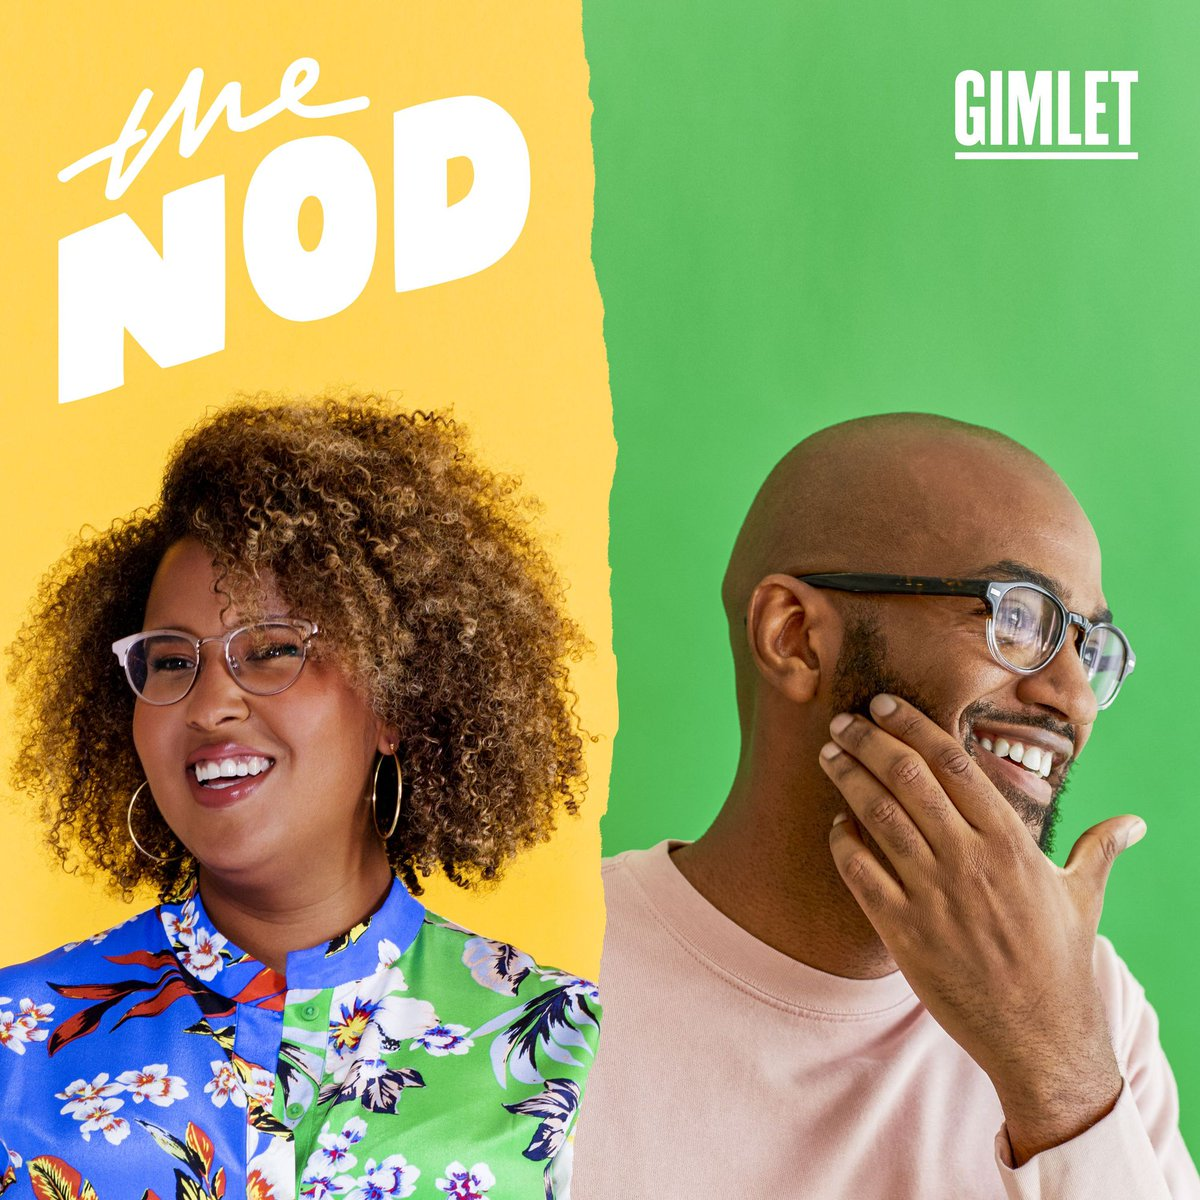 The hosts of The Nod want Spotify to hand over their podcast